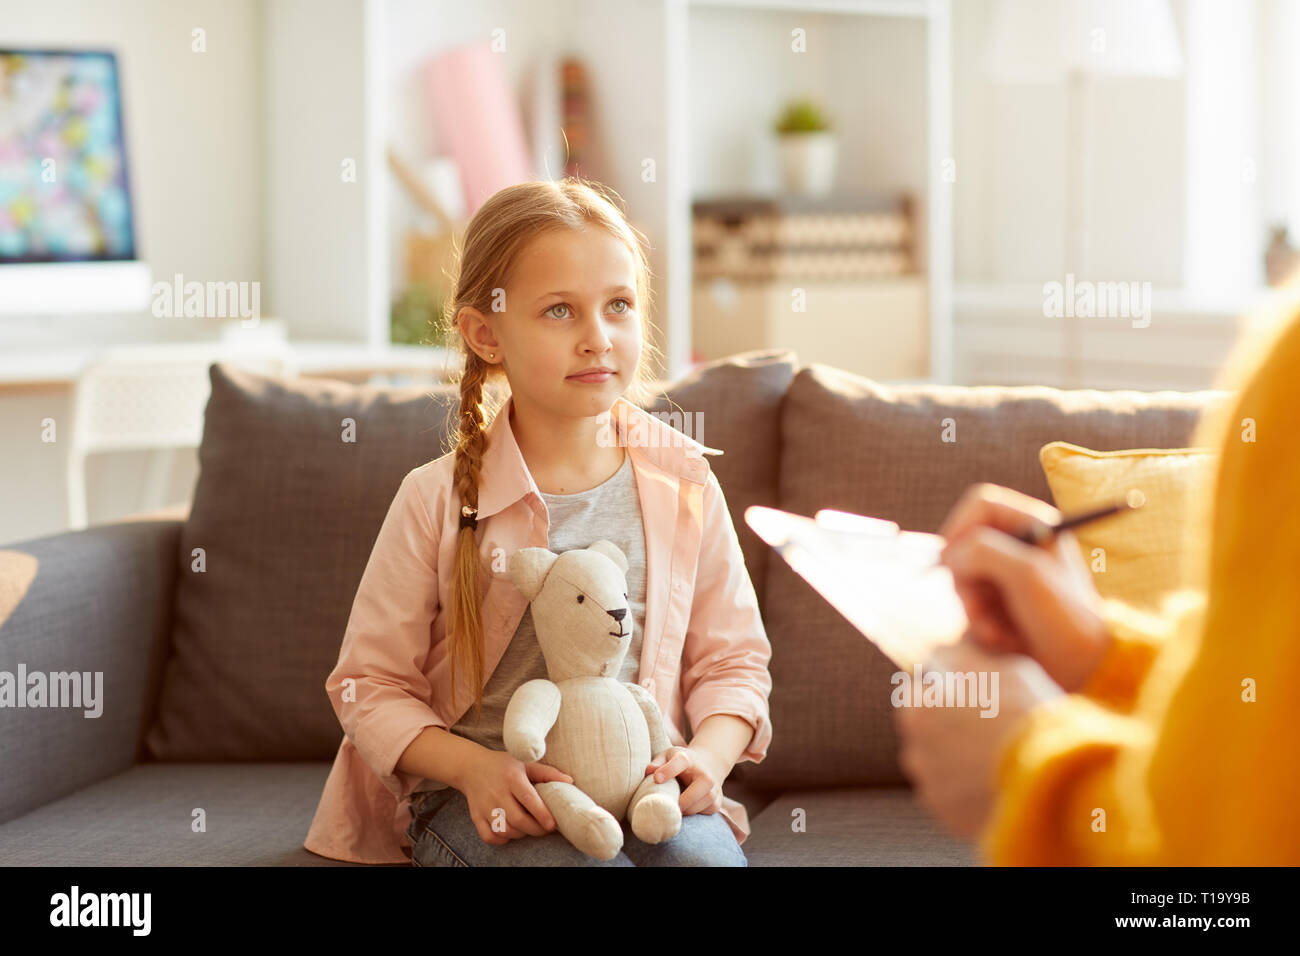 Little Girl in Therapy Session - Stock Image